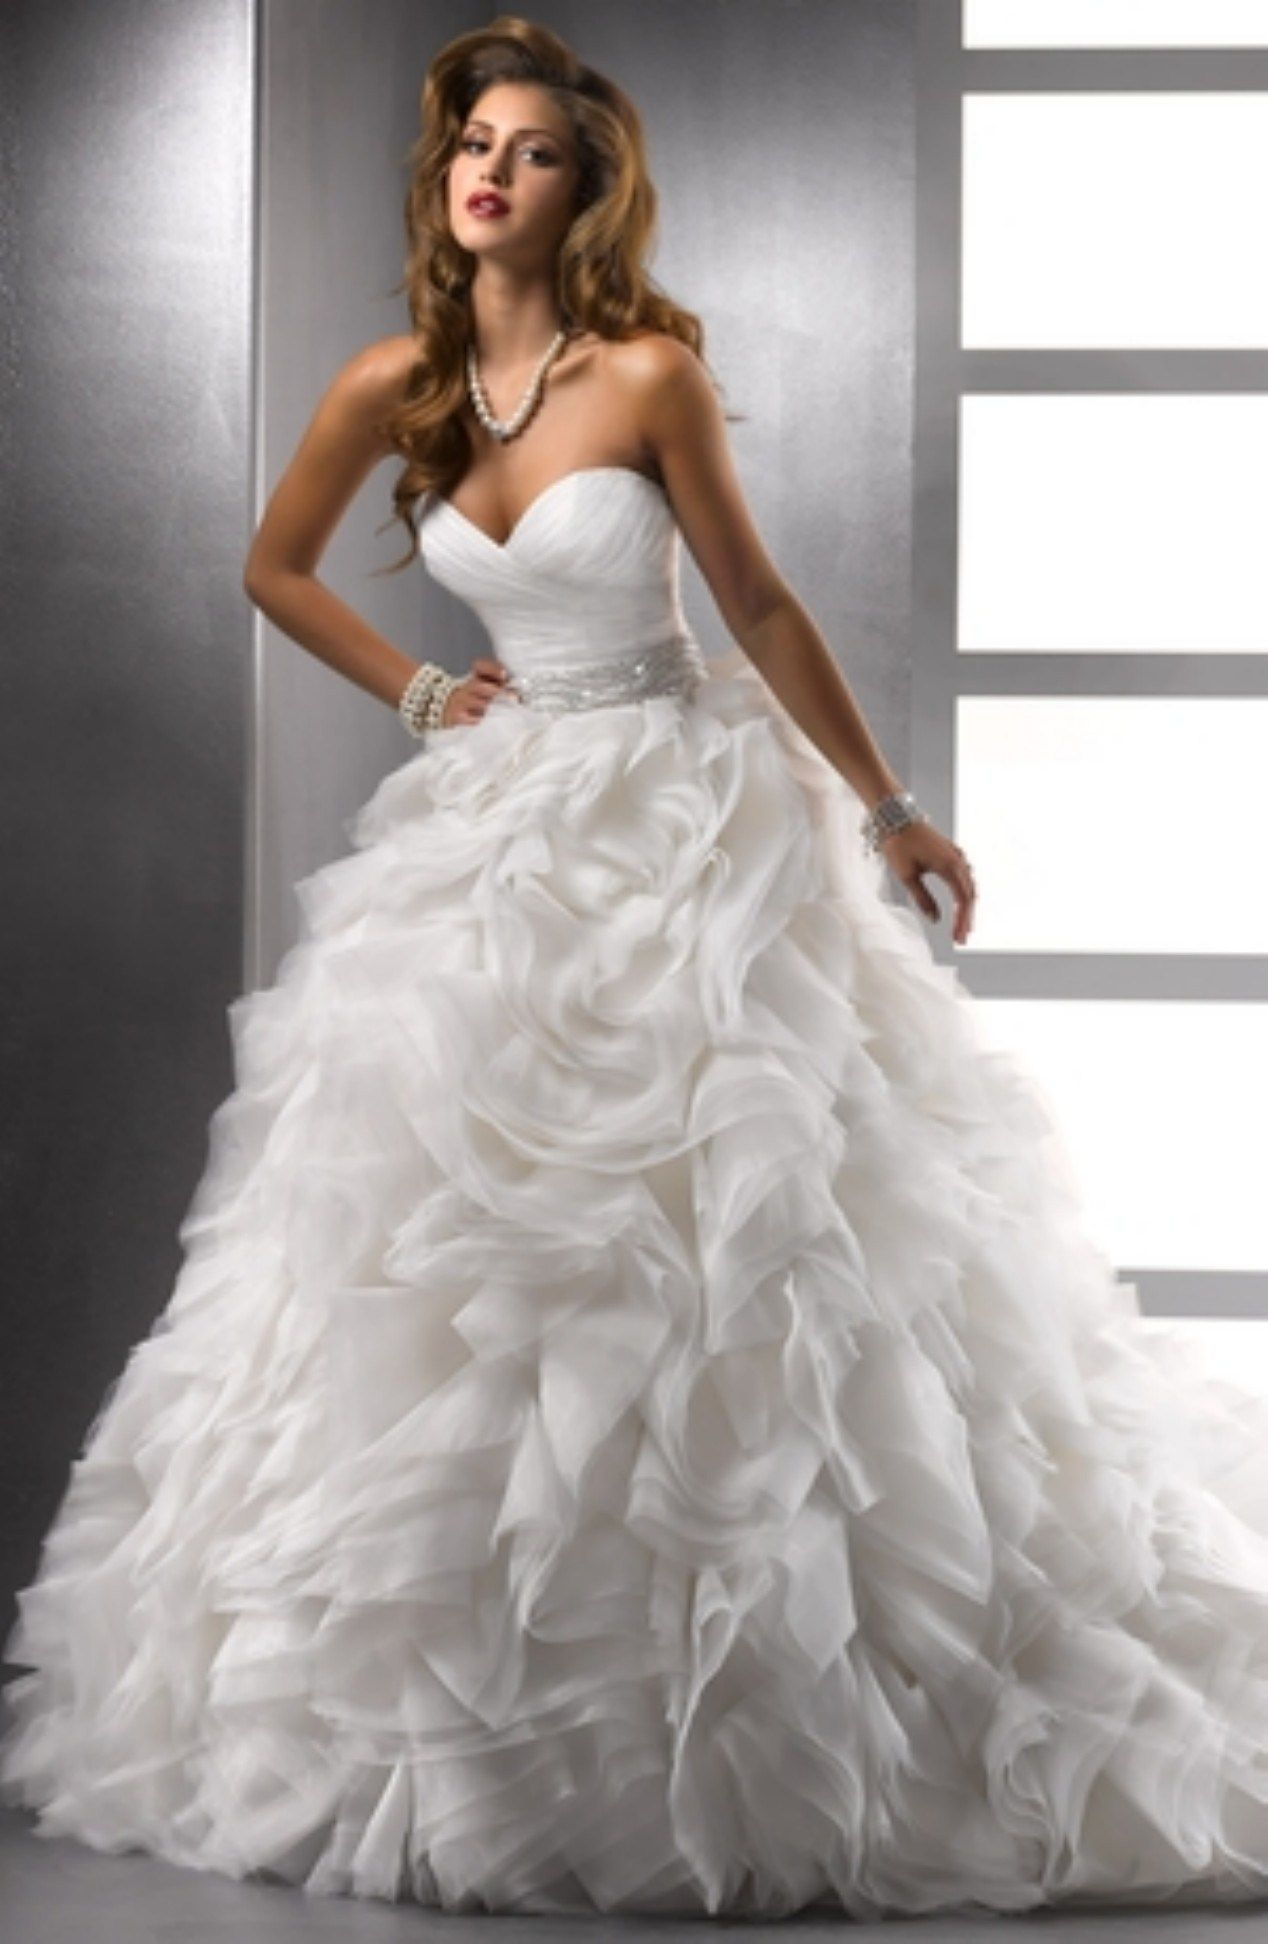 Breathtaking disney princess wedding dress to fullfill your wedding ...